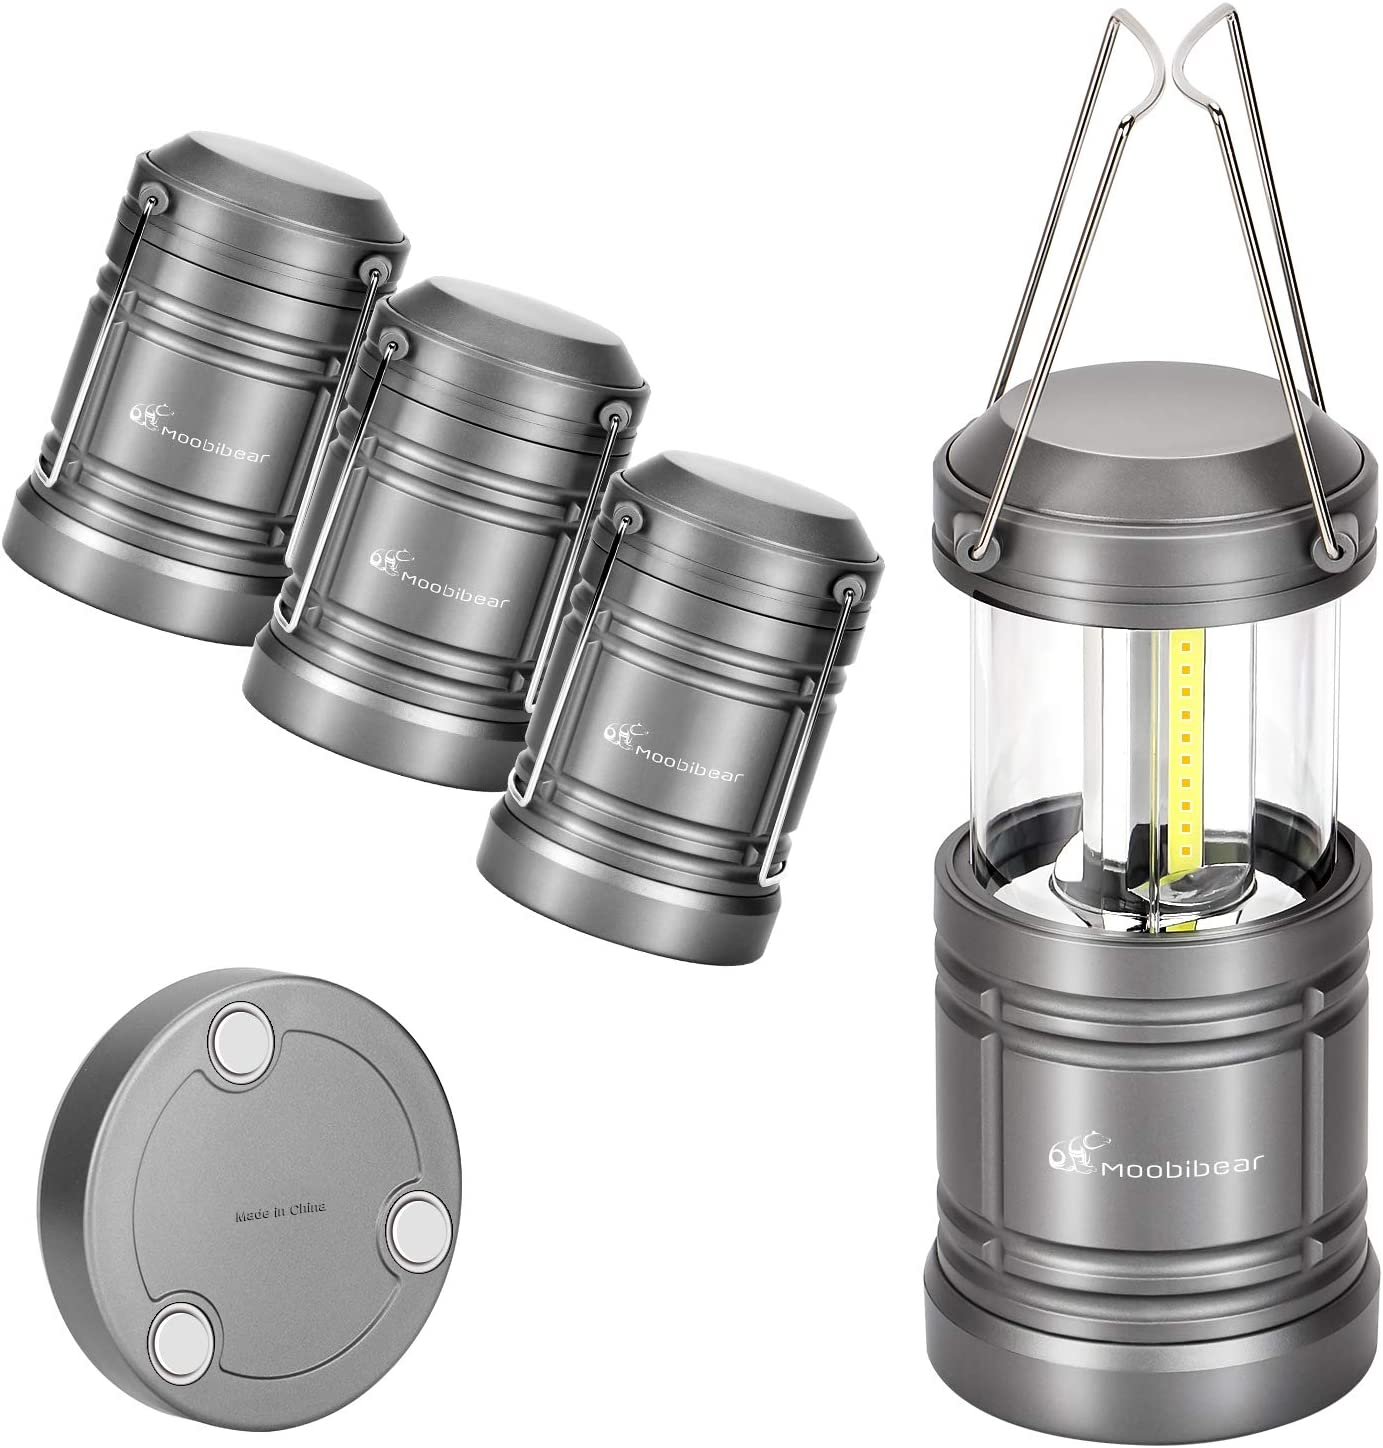 Moobibear 4 Pack LED Camping Lantern Lights Collapsible 500lm COB Technology Waterproof Lantern Battery Powered with Magnetic Base for Night, Fishing, Hiking, Emergencies - -